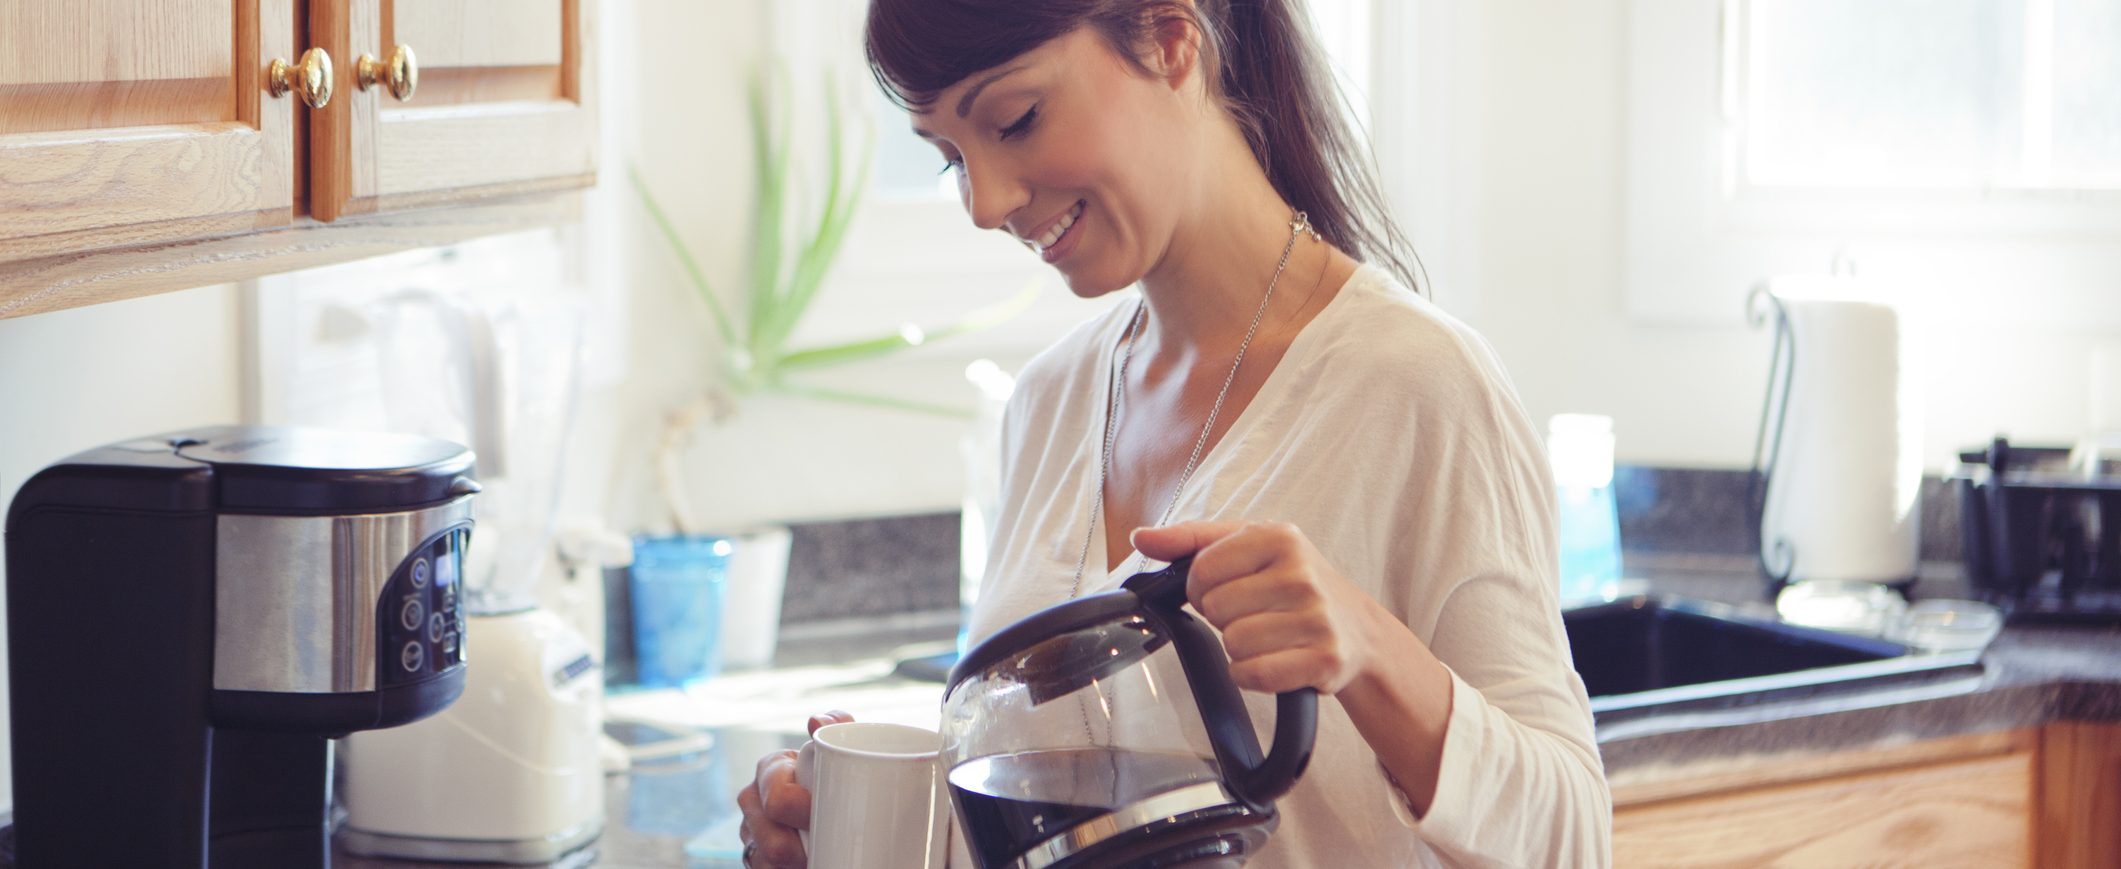 Making coffee at home is an easy way to cut back on your daily spending